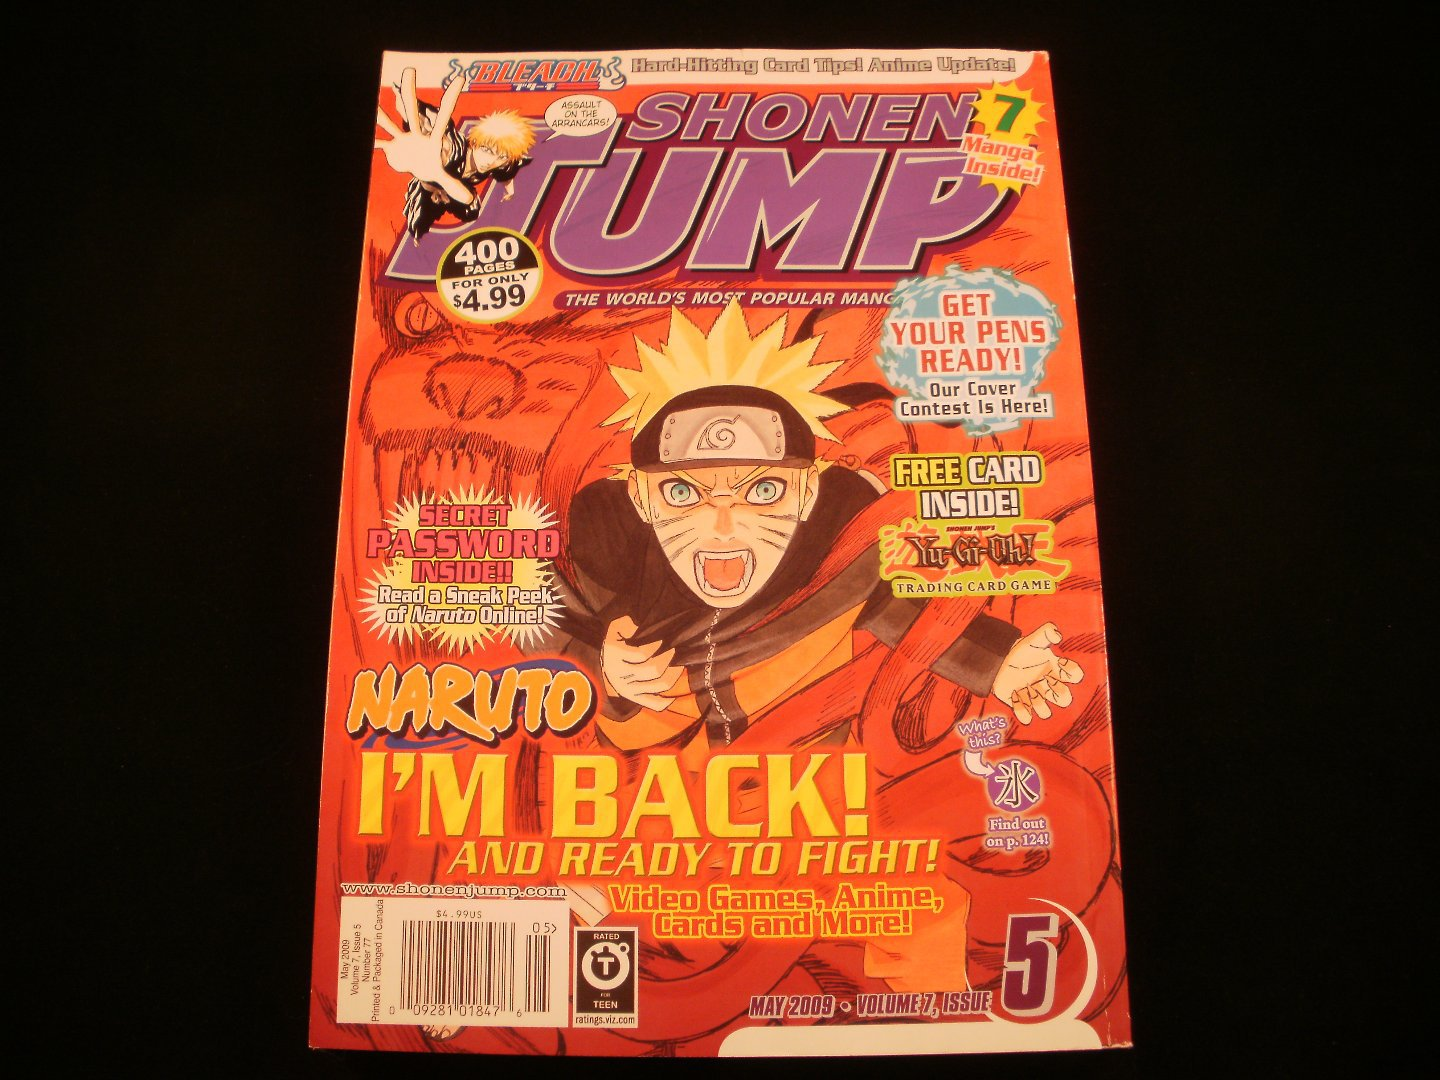 Shonen Jump - May 2009 - Volume 7, Issue 5, Number 77